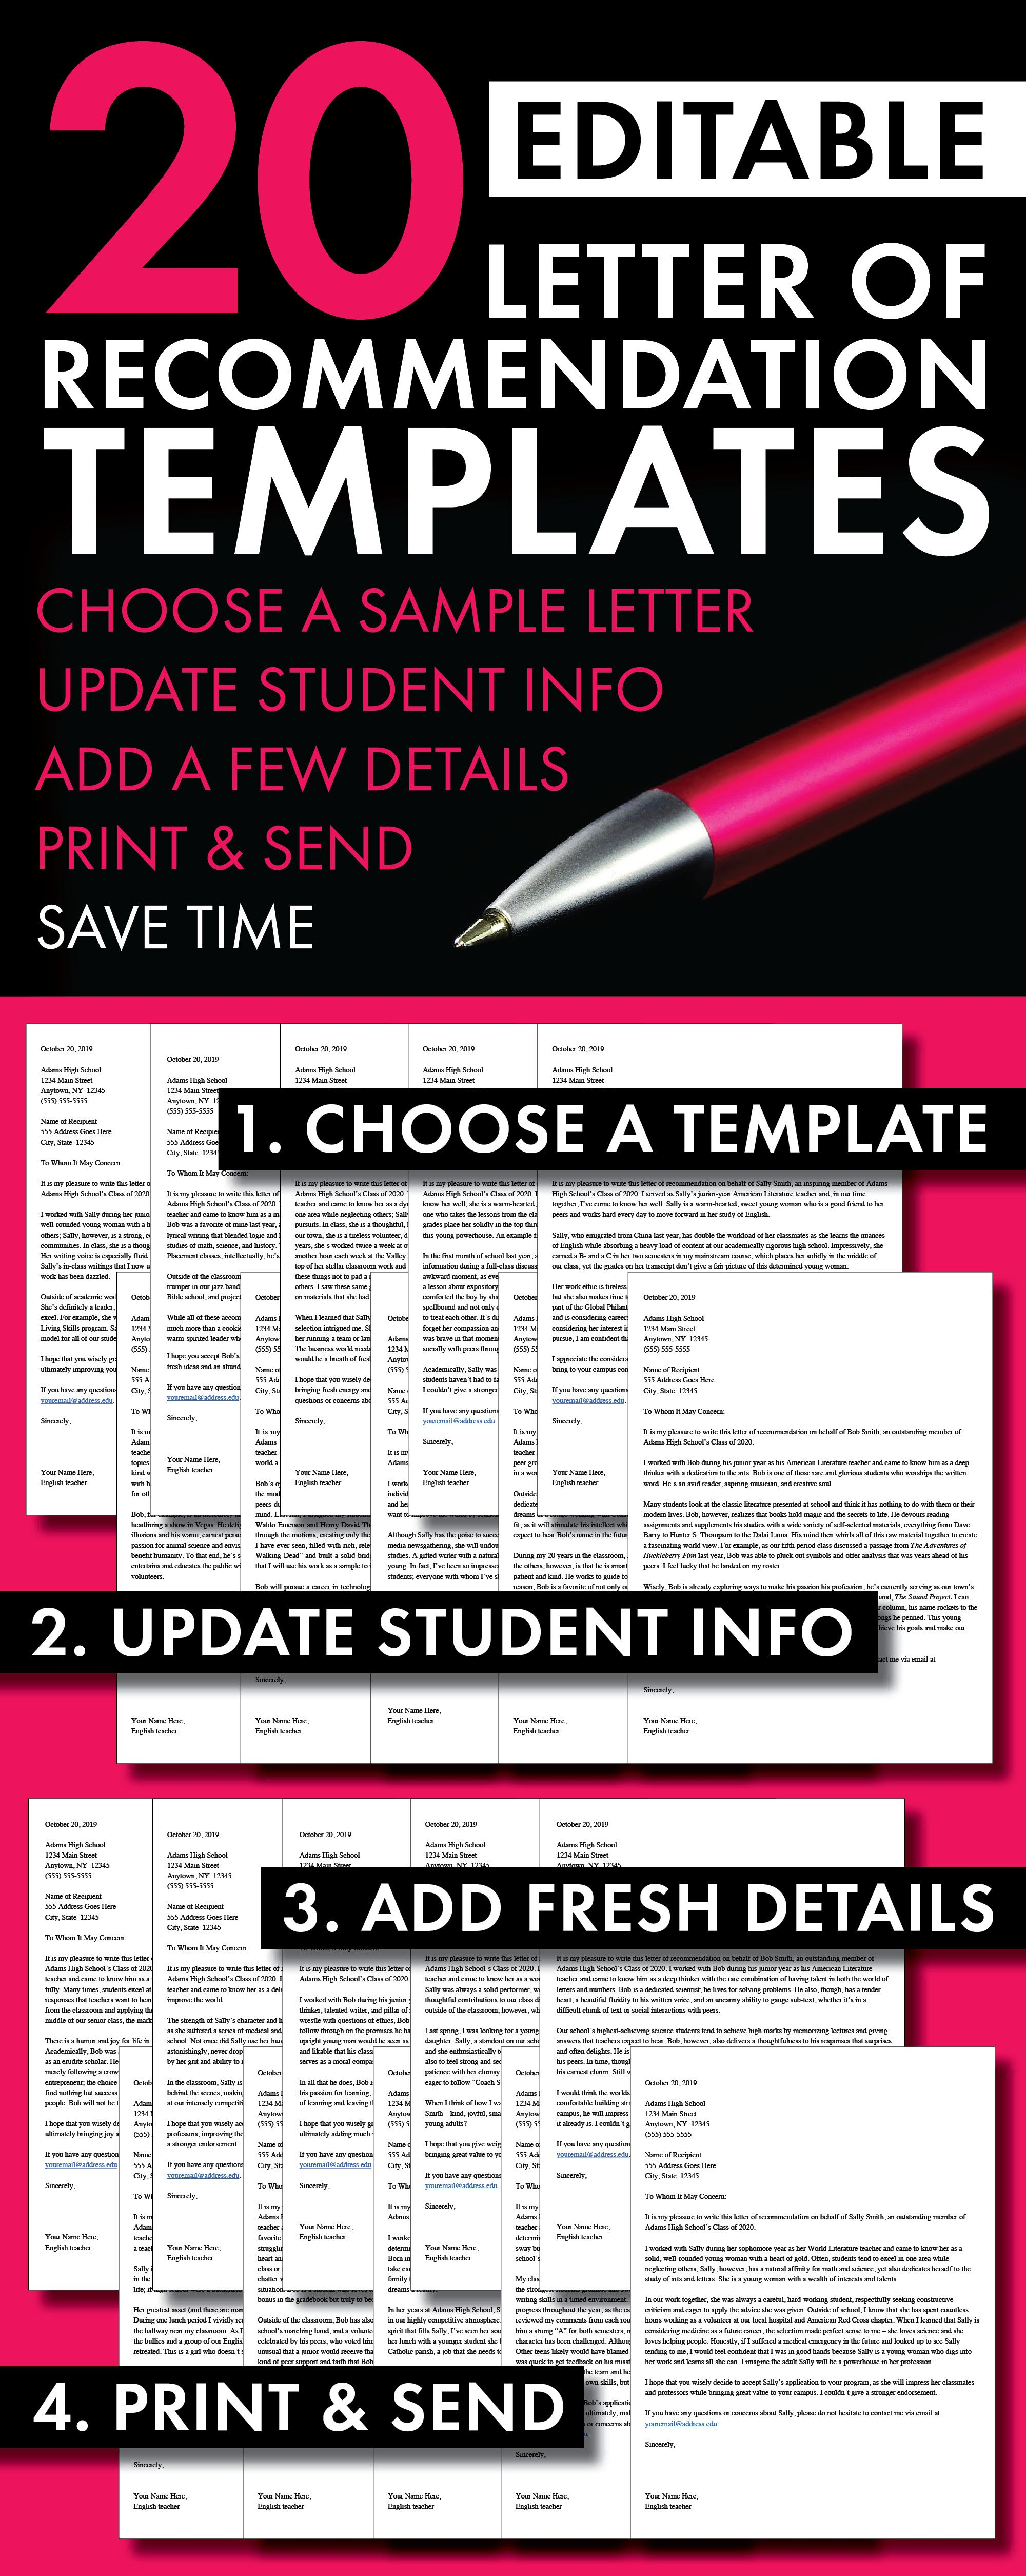 Letter of recommendation templates college application letter college application letters of recommendation templates high school teachers save time with this set of pre written letter templates thecheapjerseys Gallery